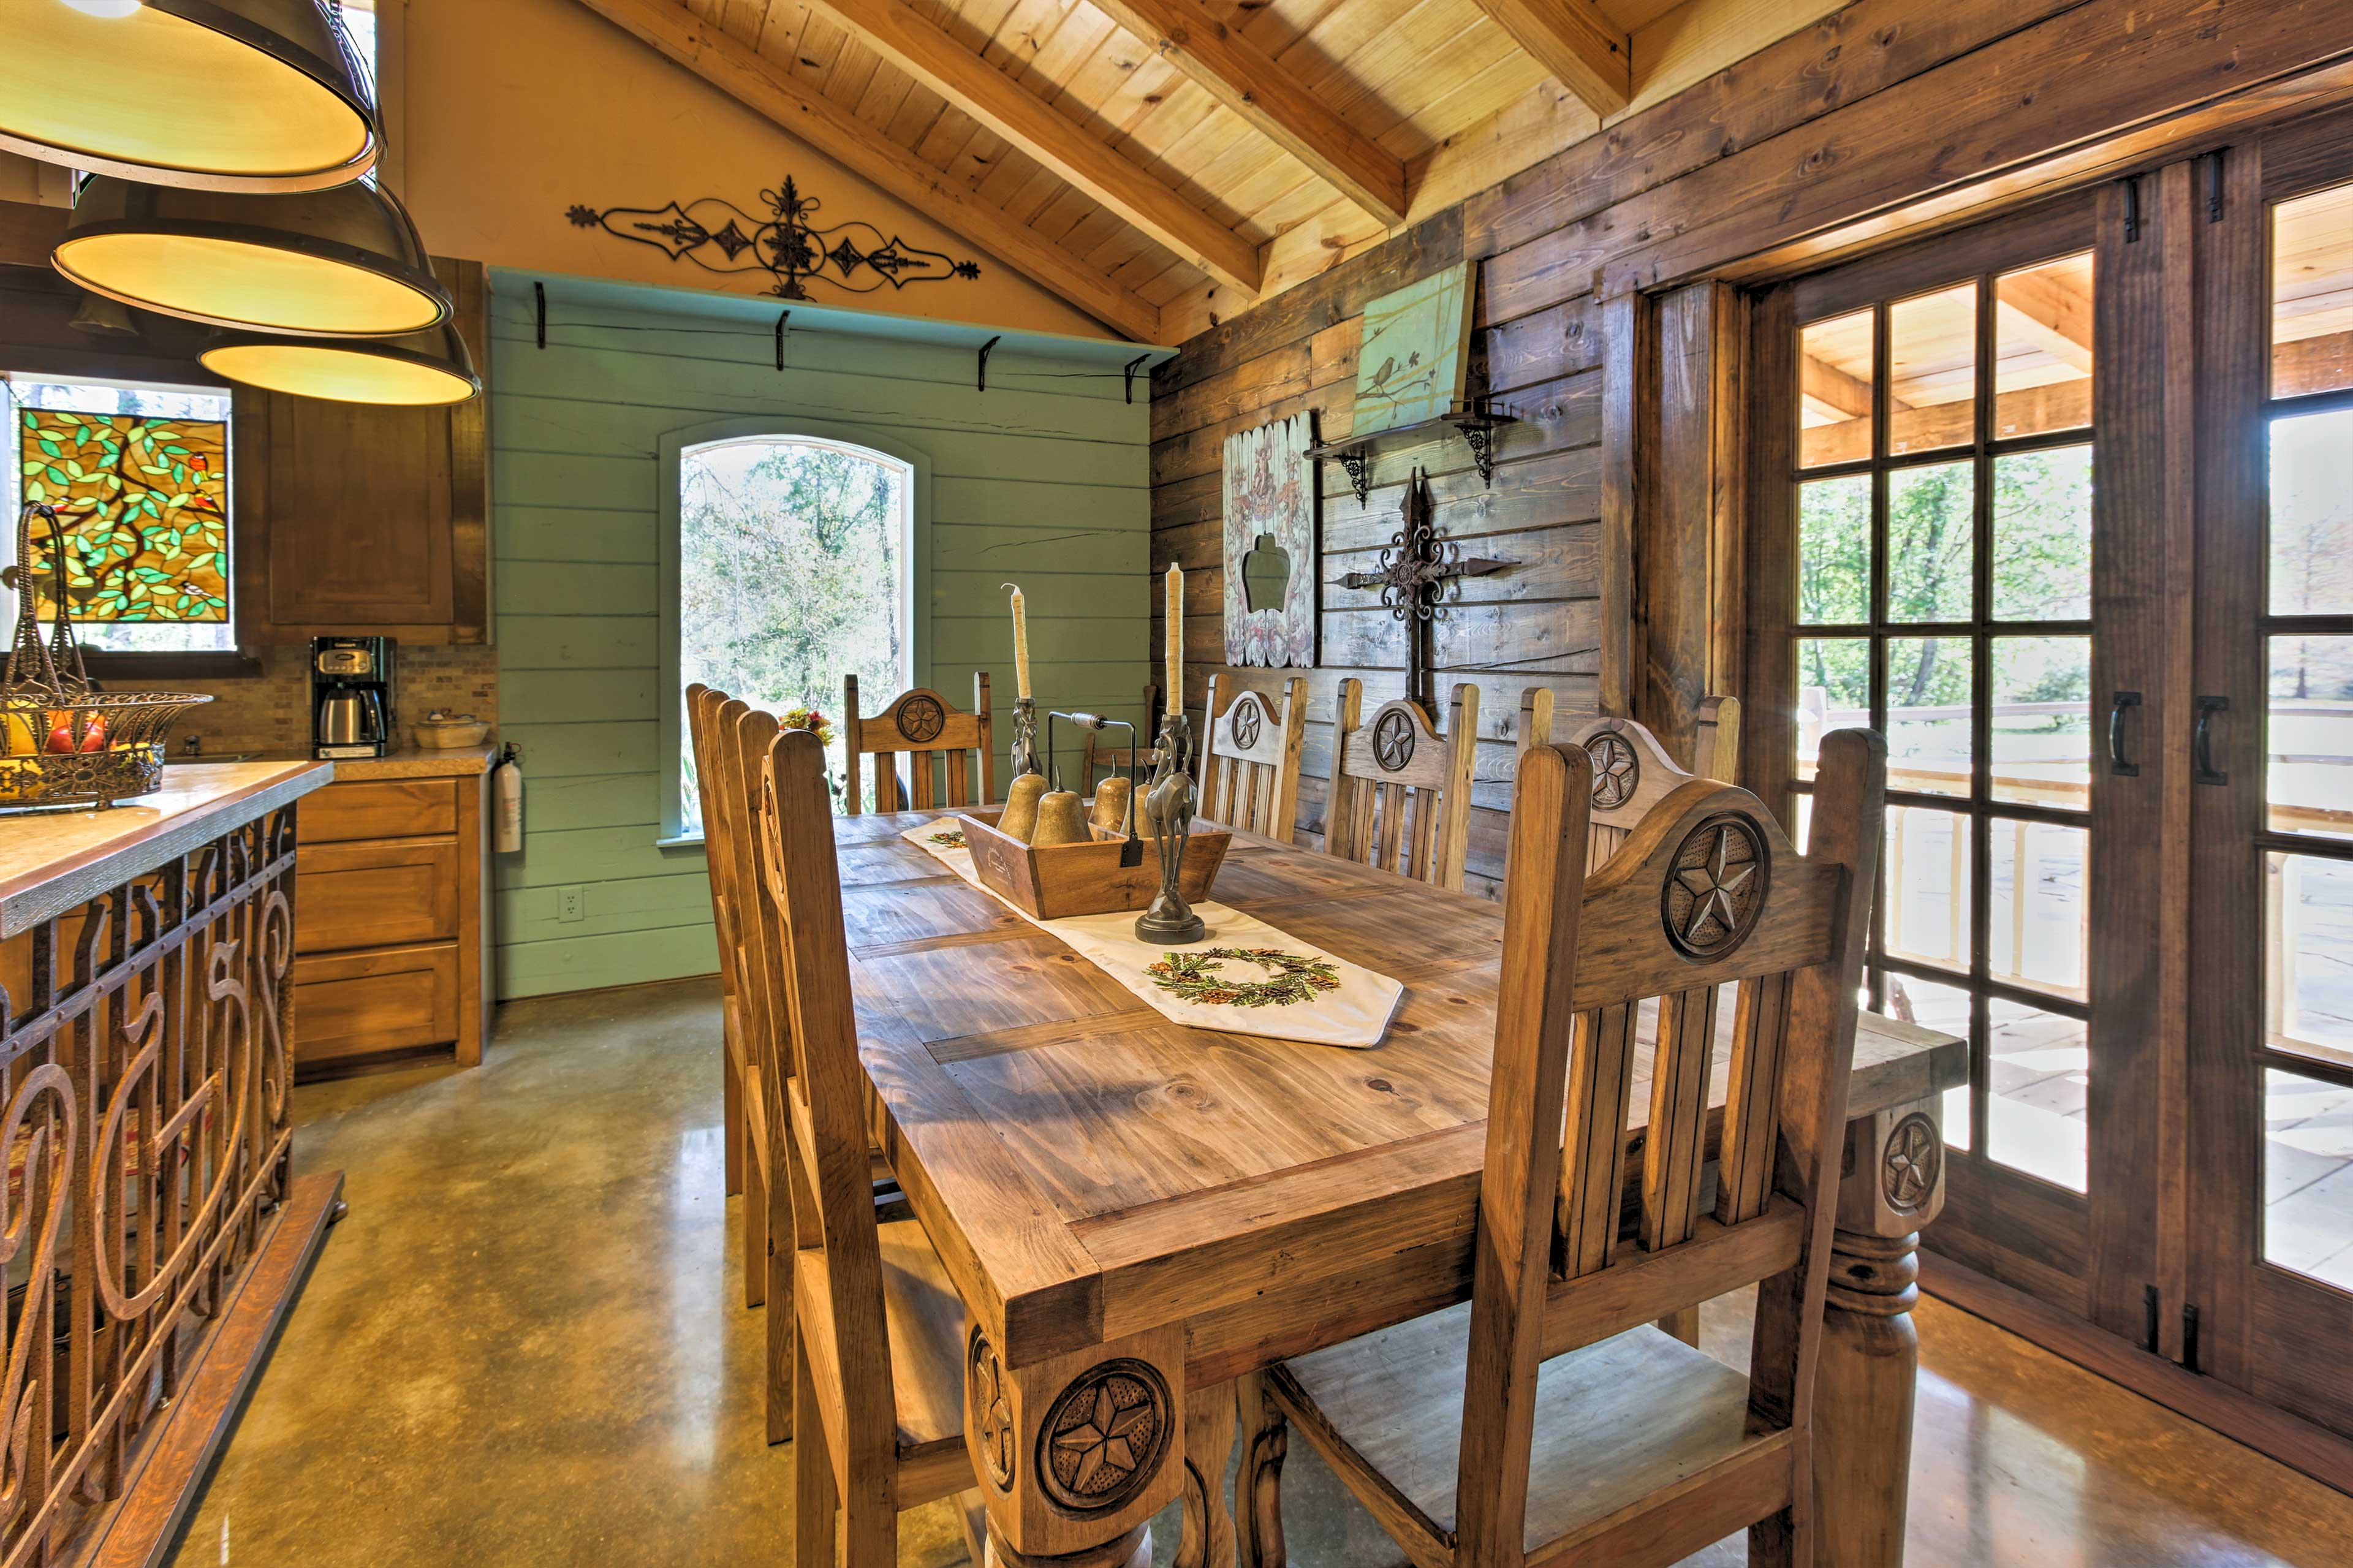 Share delicious home-cooked meals on the rustic dining room table.